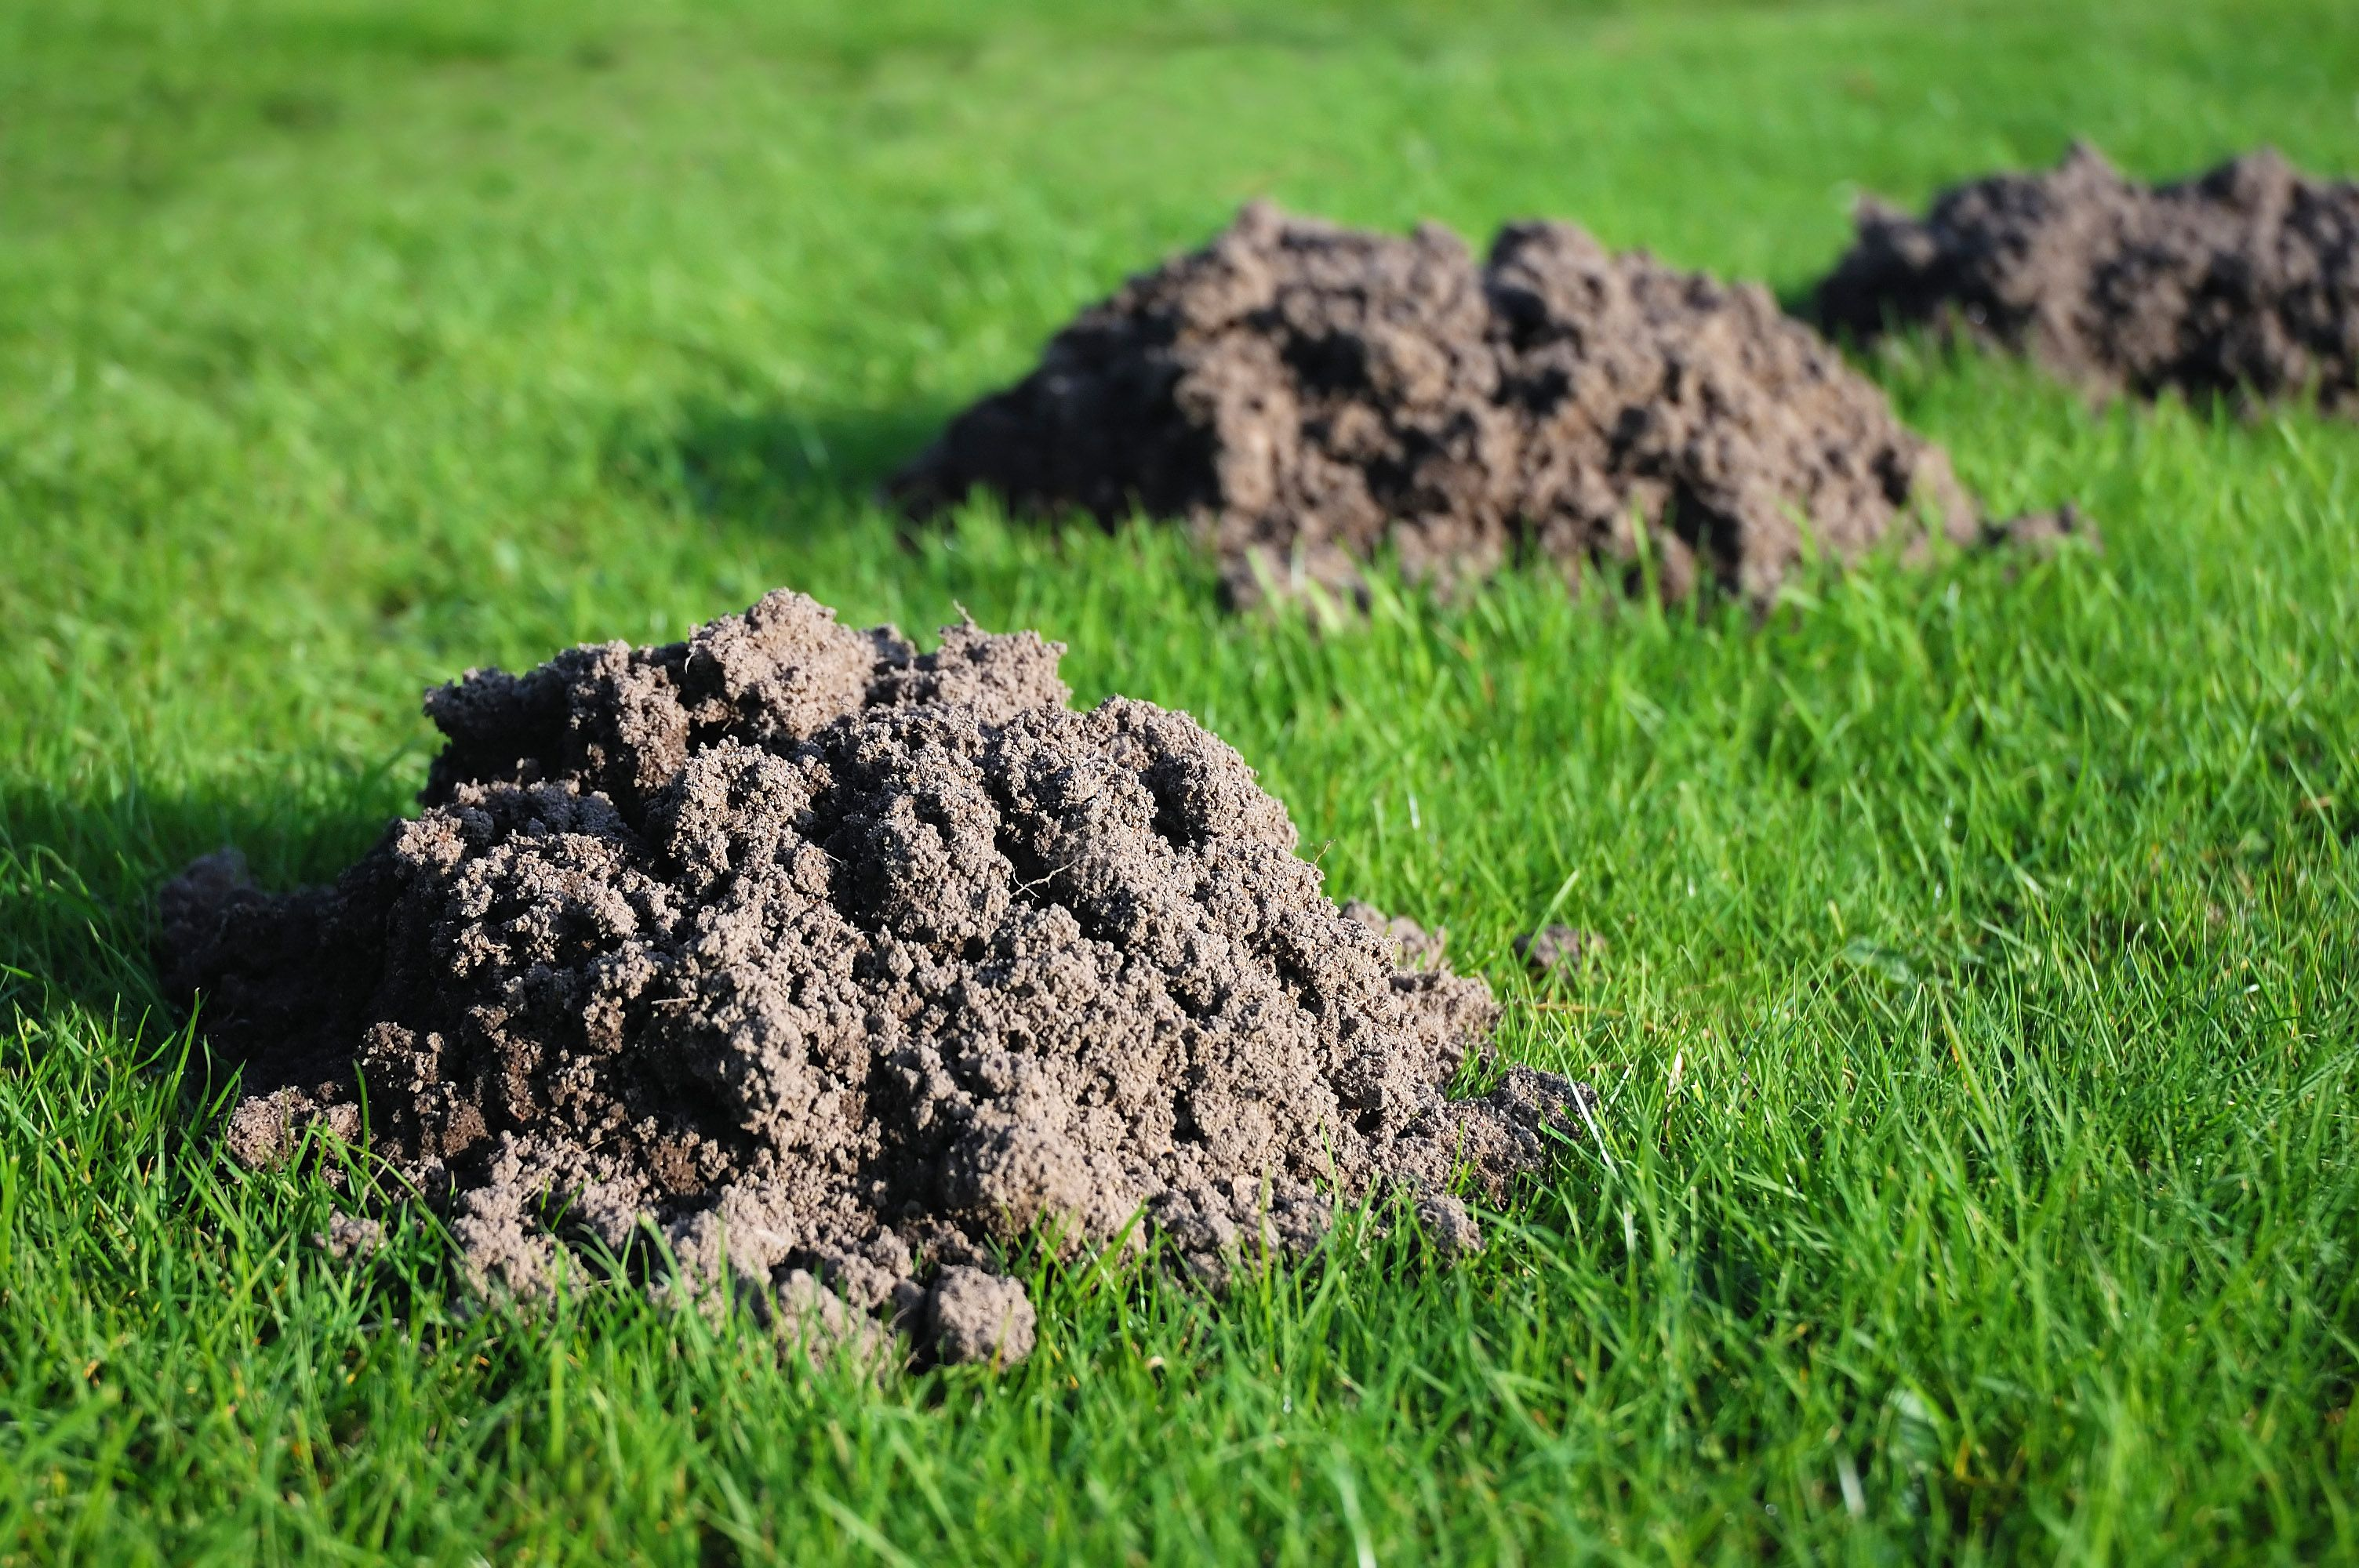 How to Get Rid of Those Pesky Moles in Your Yard